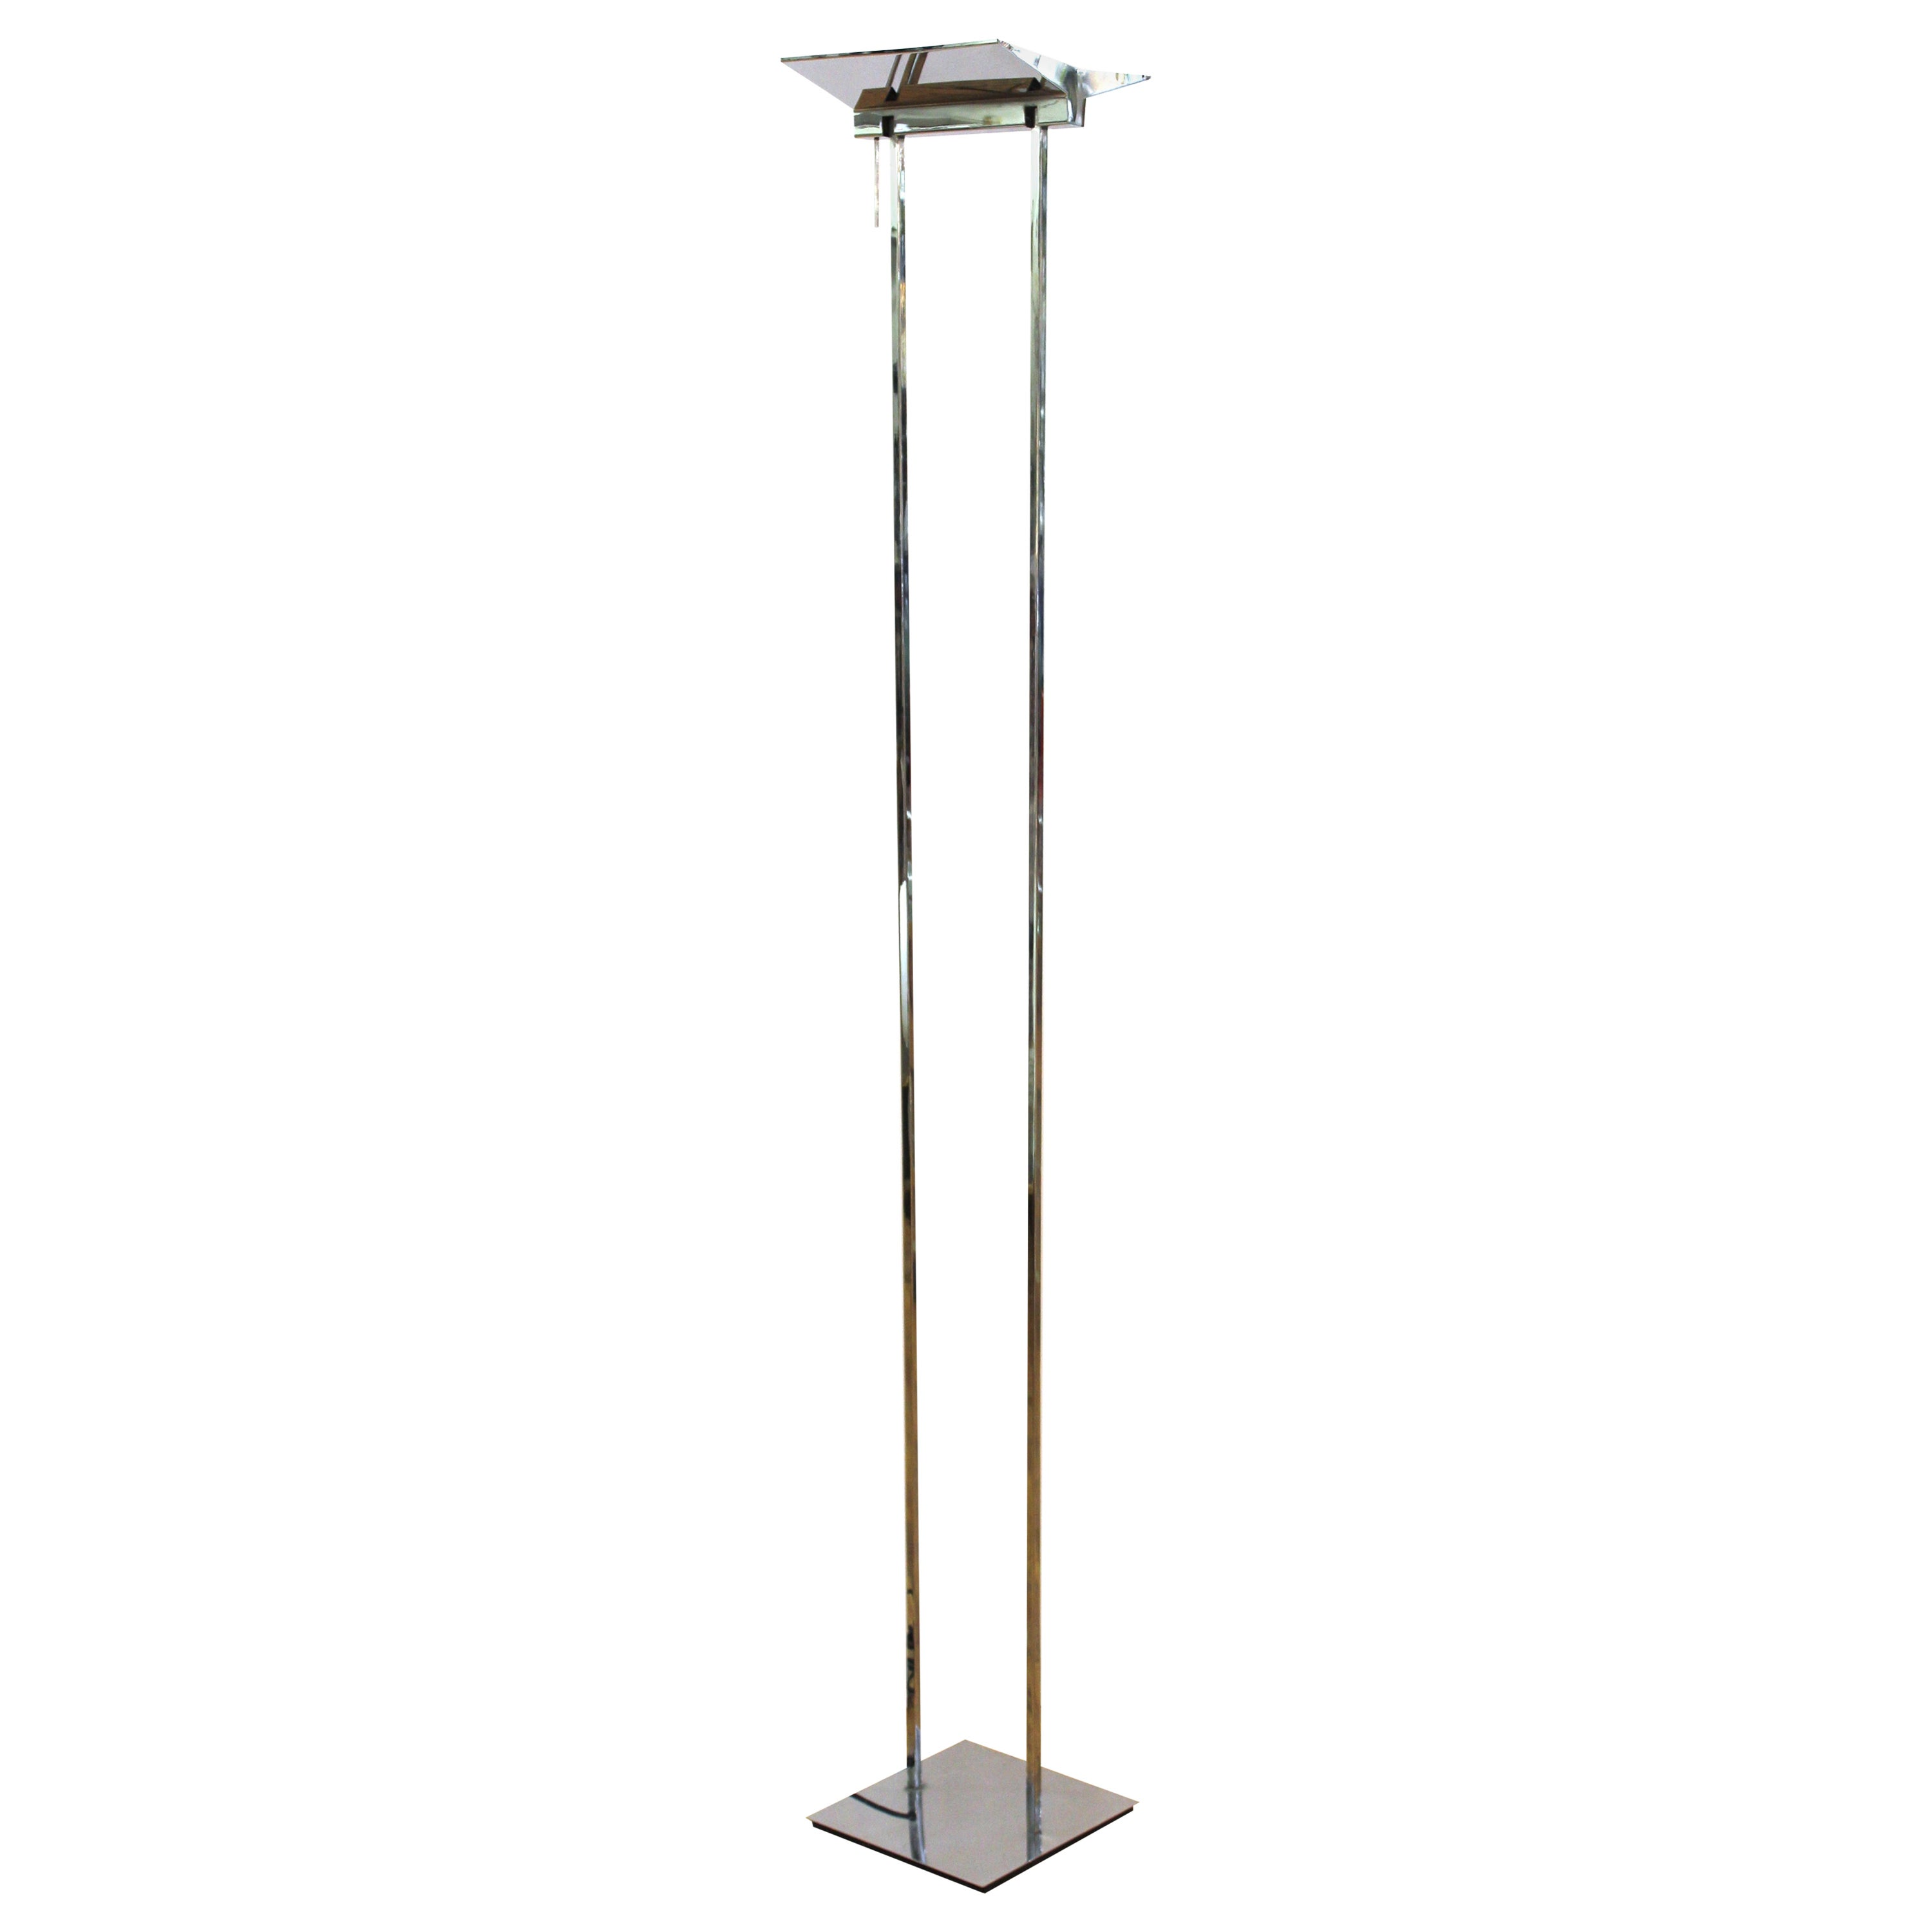 Gianfranco Frattini Attributed Relco Italian Modern Chrome Torchiere Floor Lamp